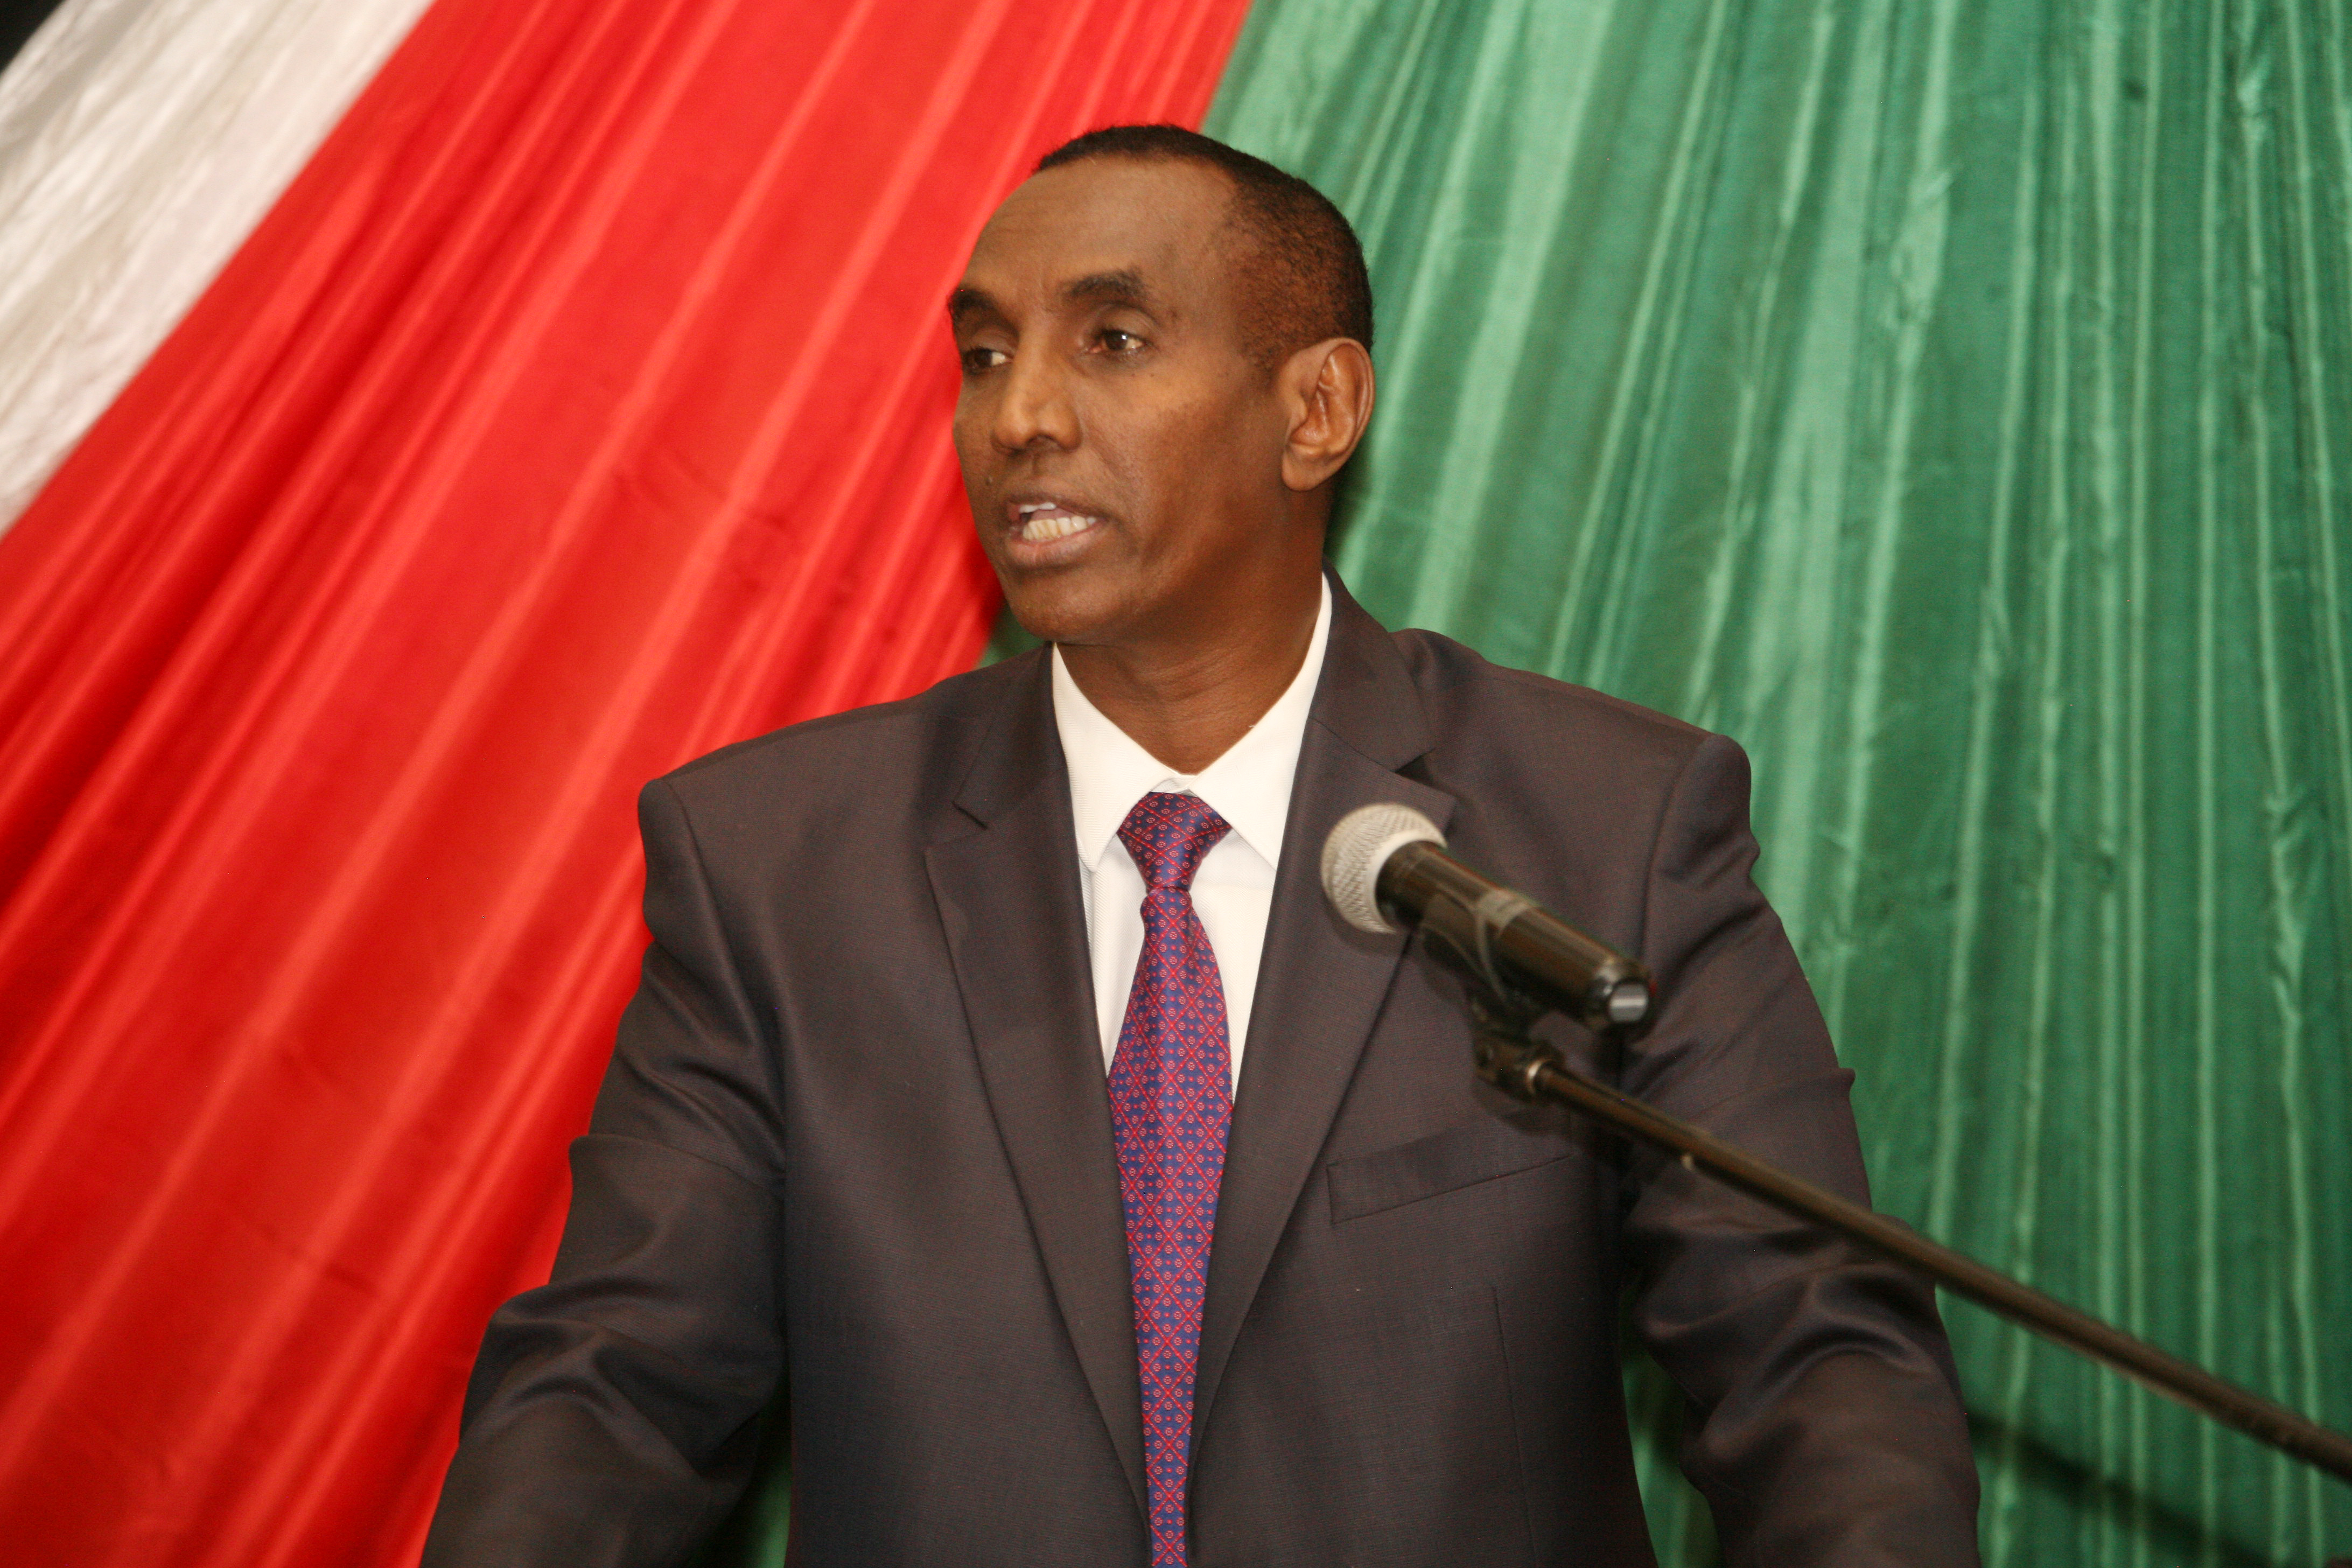 THE HIGH COMMISSIONER H.E. AMB. (HON) MOHAMED M. SHIDIYE